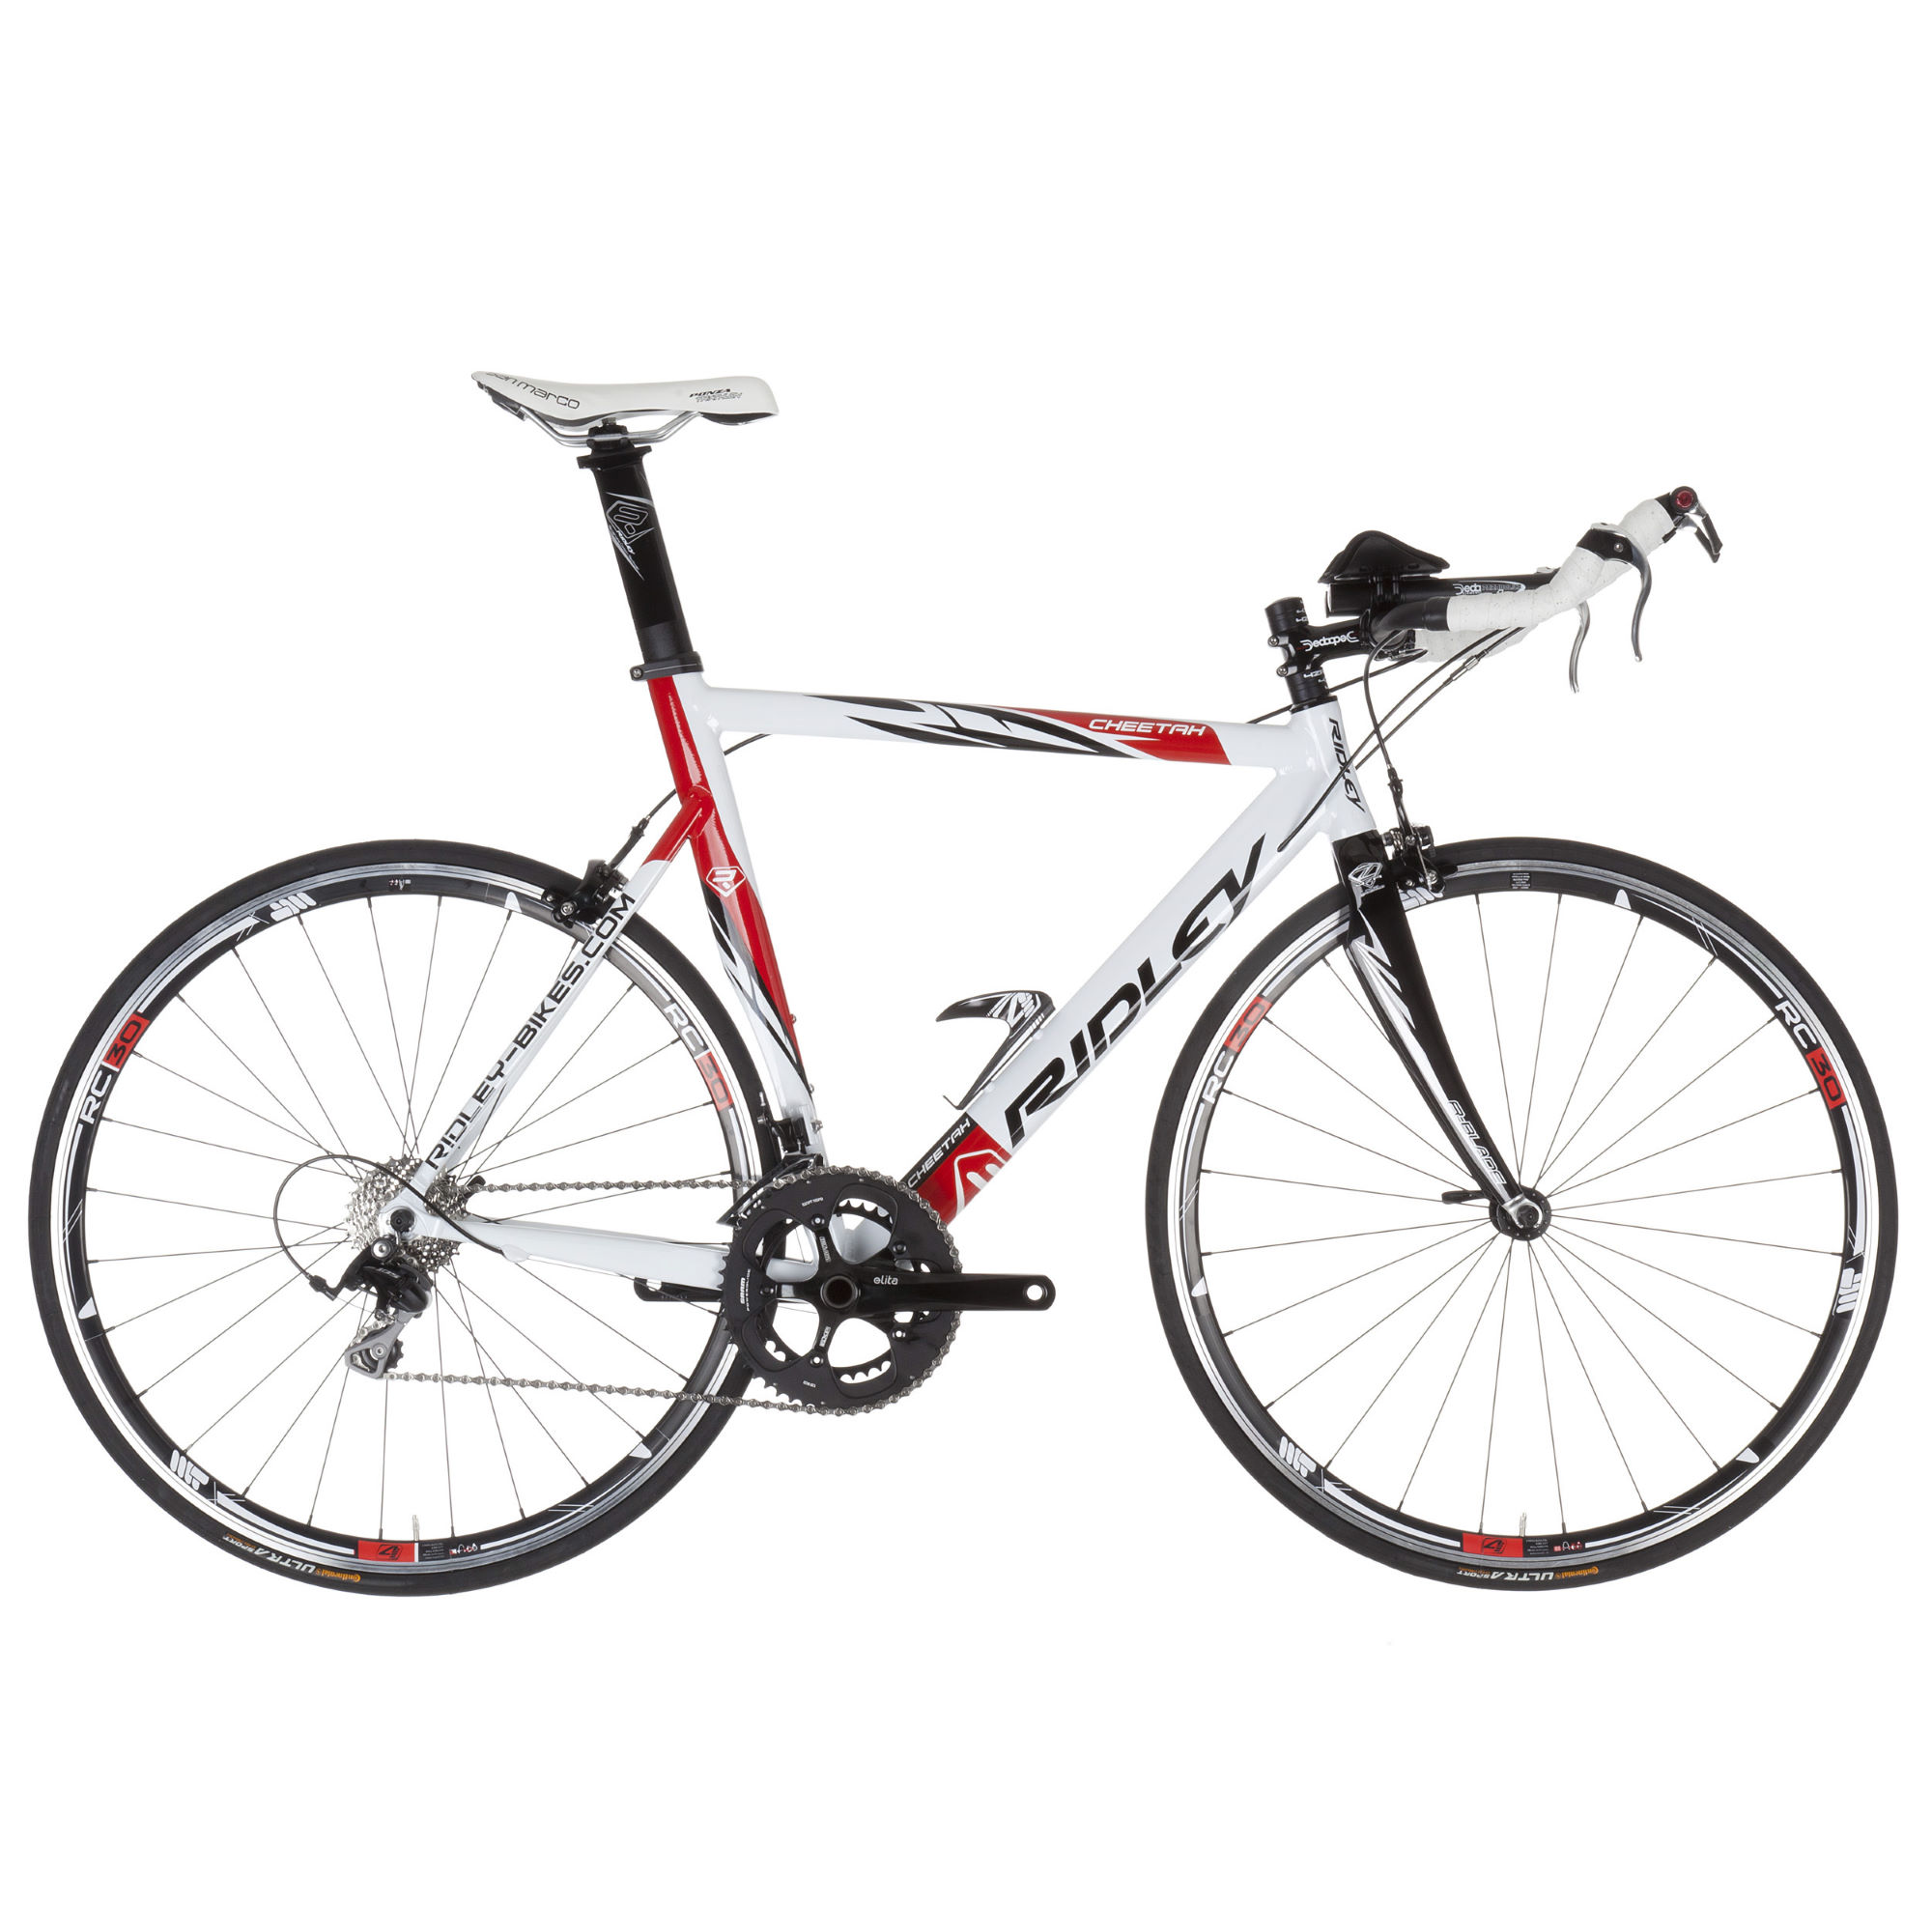 Wiggle Ridley Cheetah Special Edition Time Trial Bikes